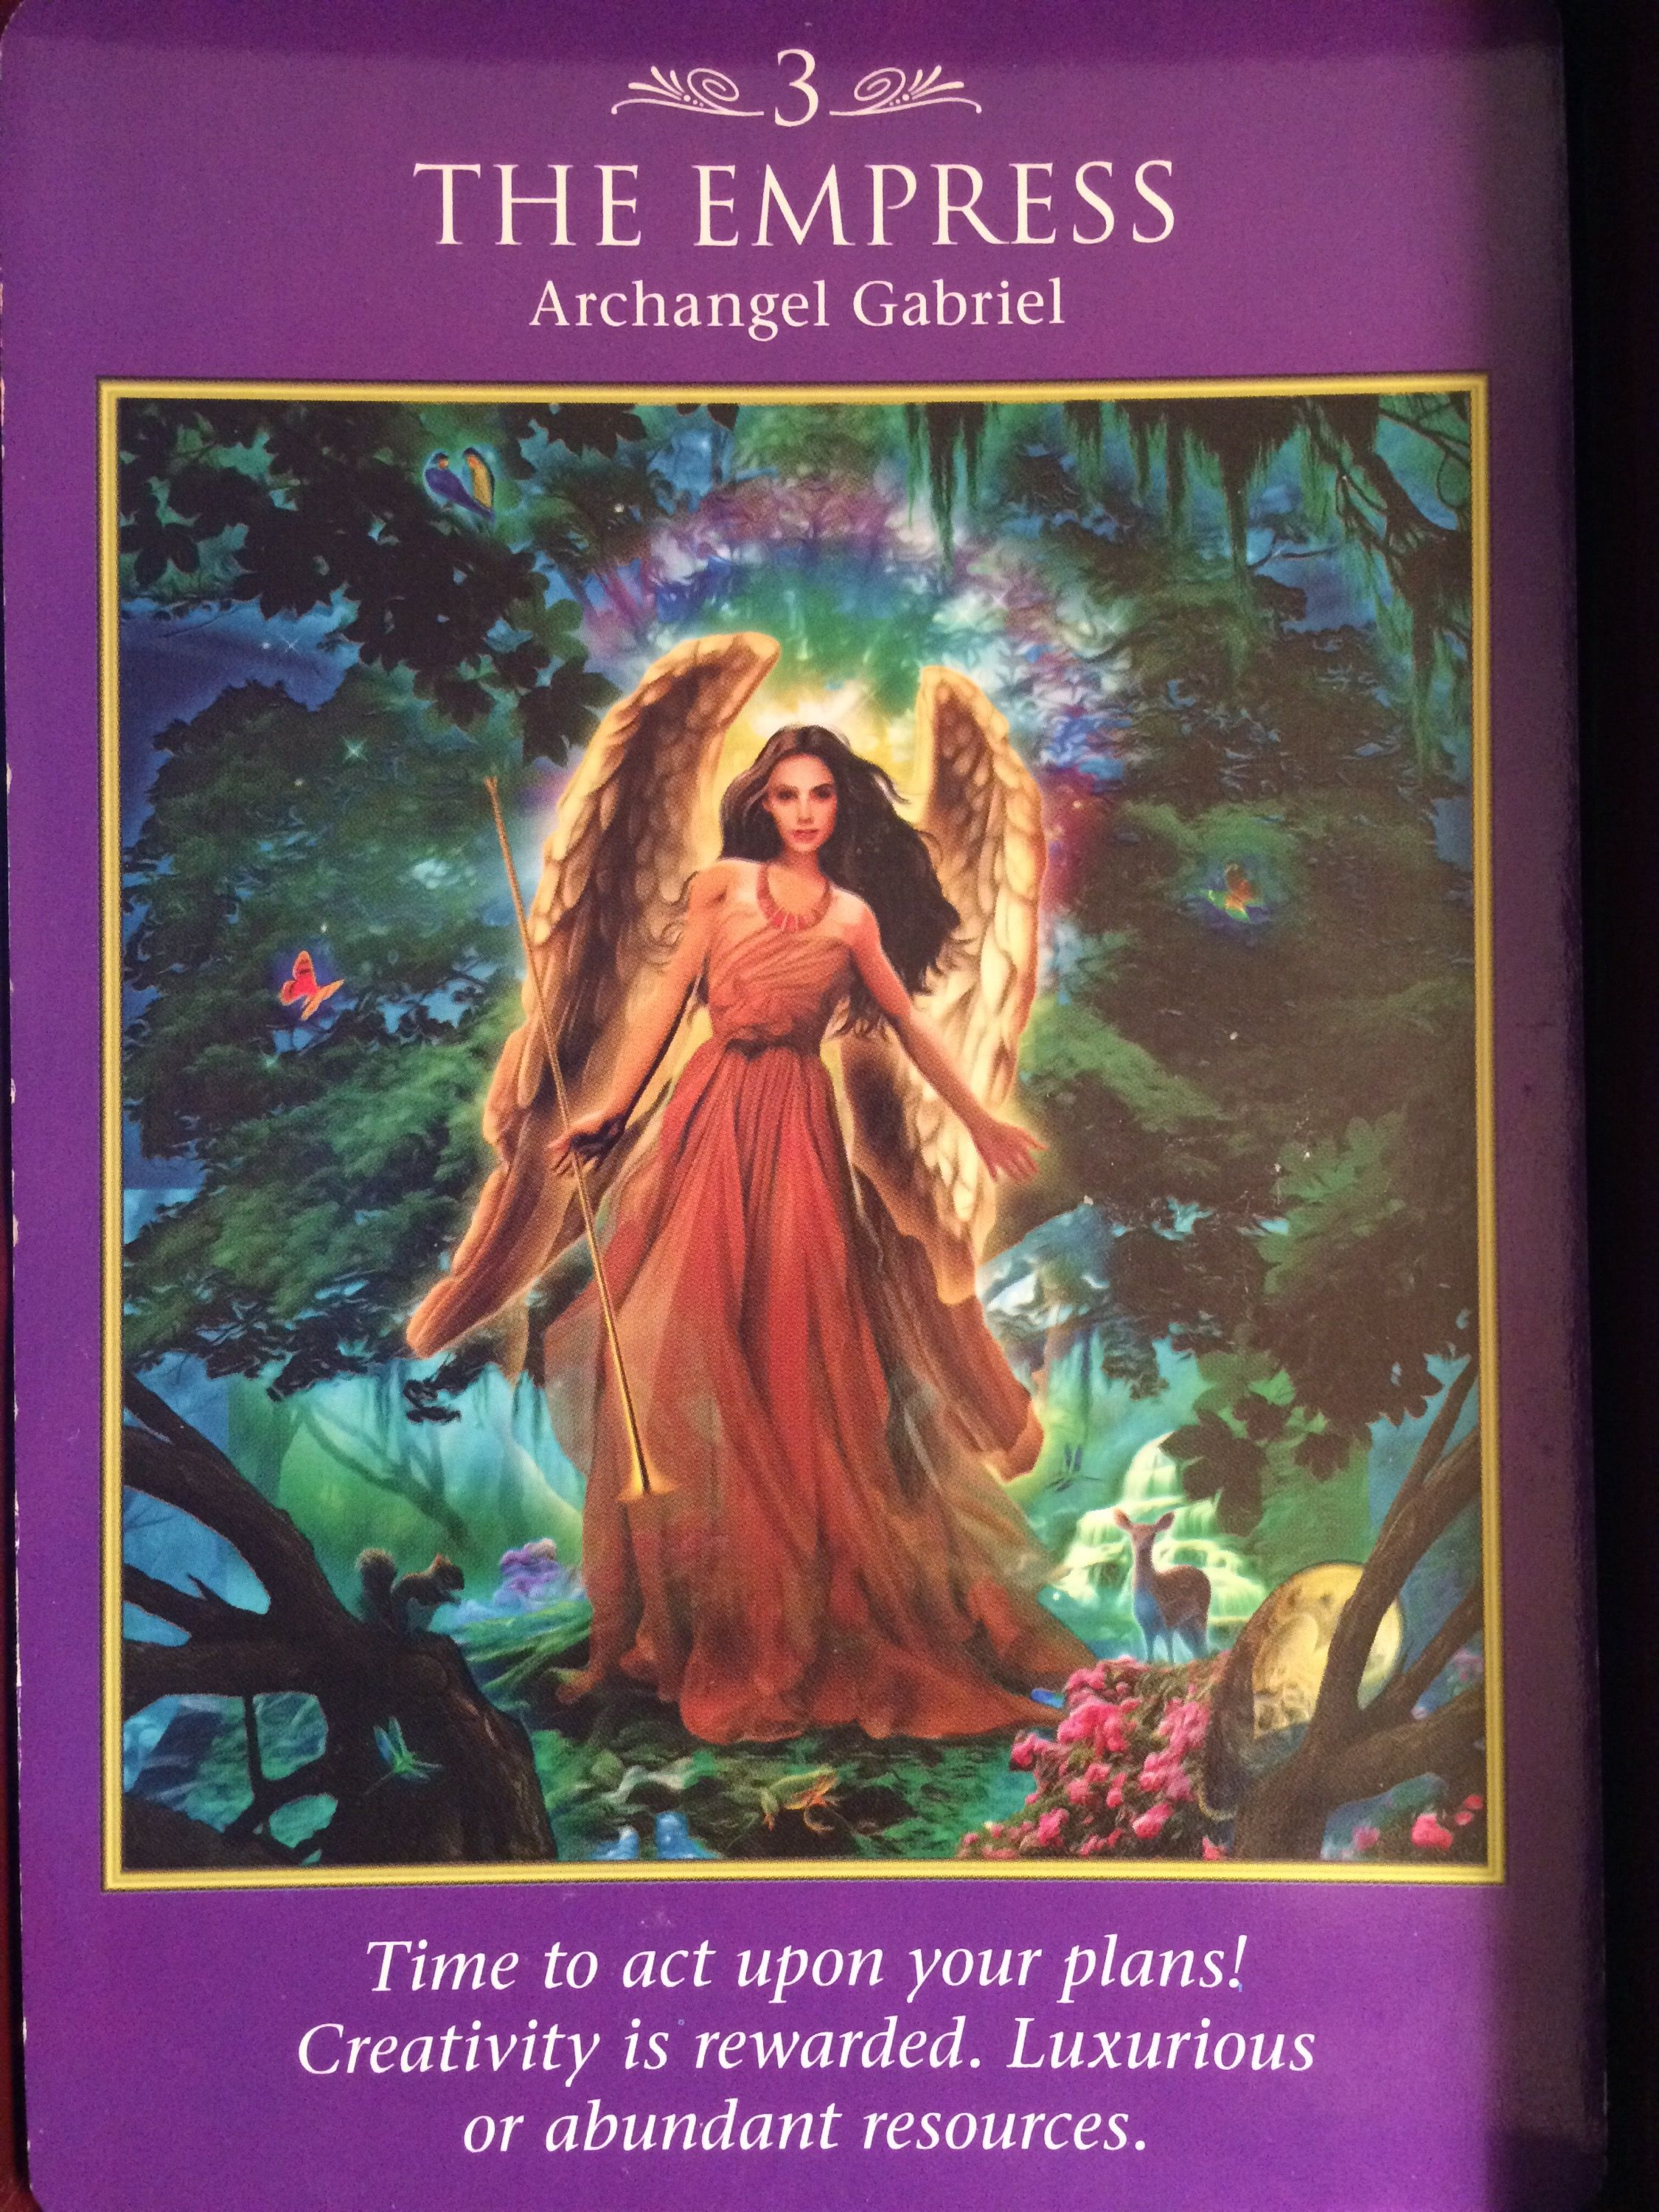 Archangel Power Tarot Cards Perspective: Image Result For Archangel Power Tarot Cards The Empress